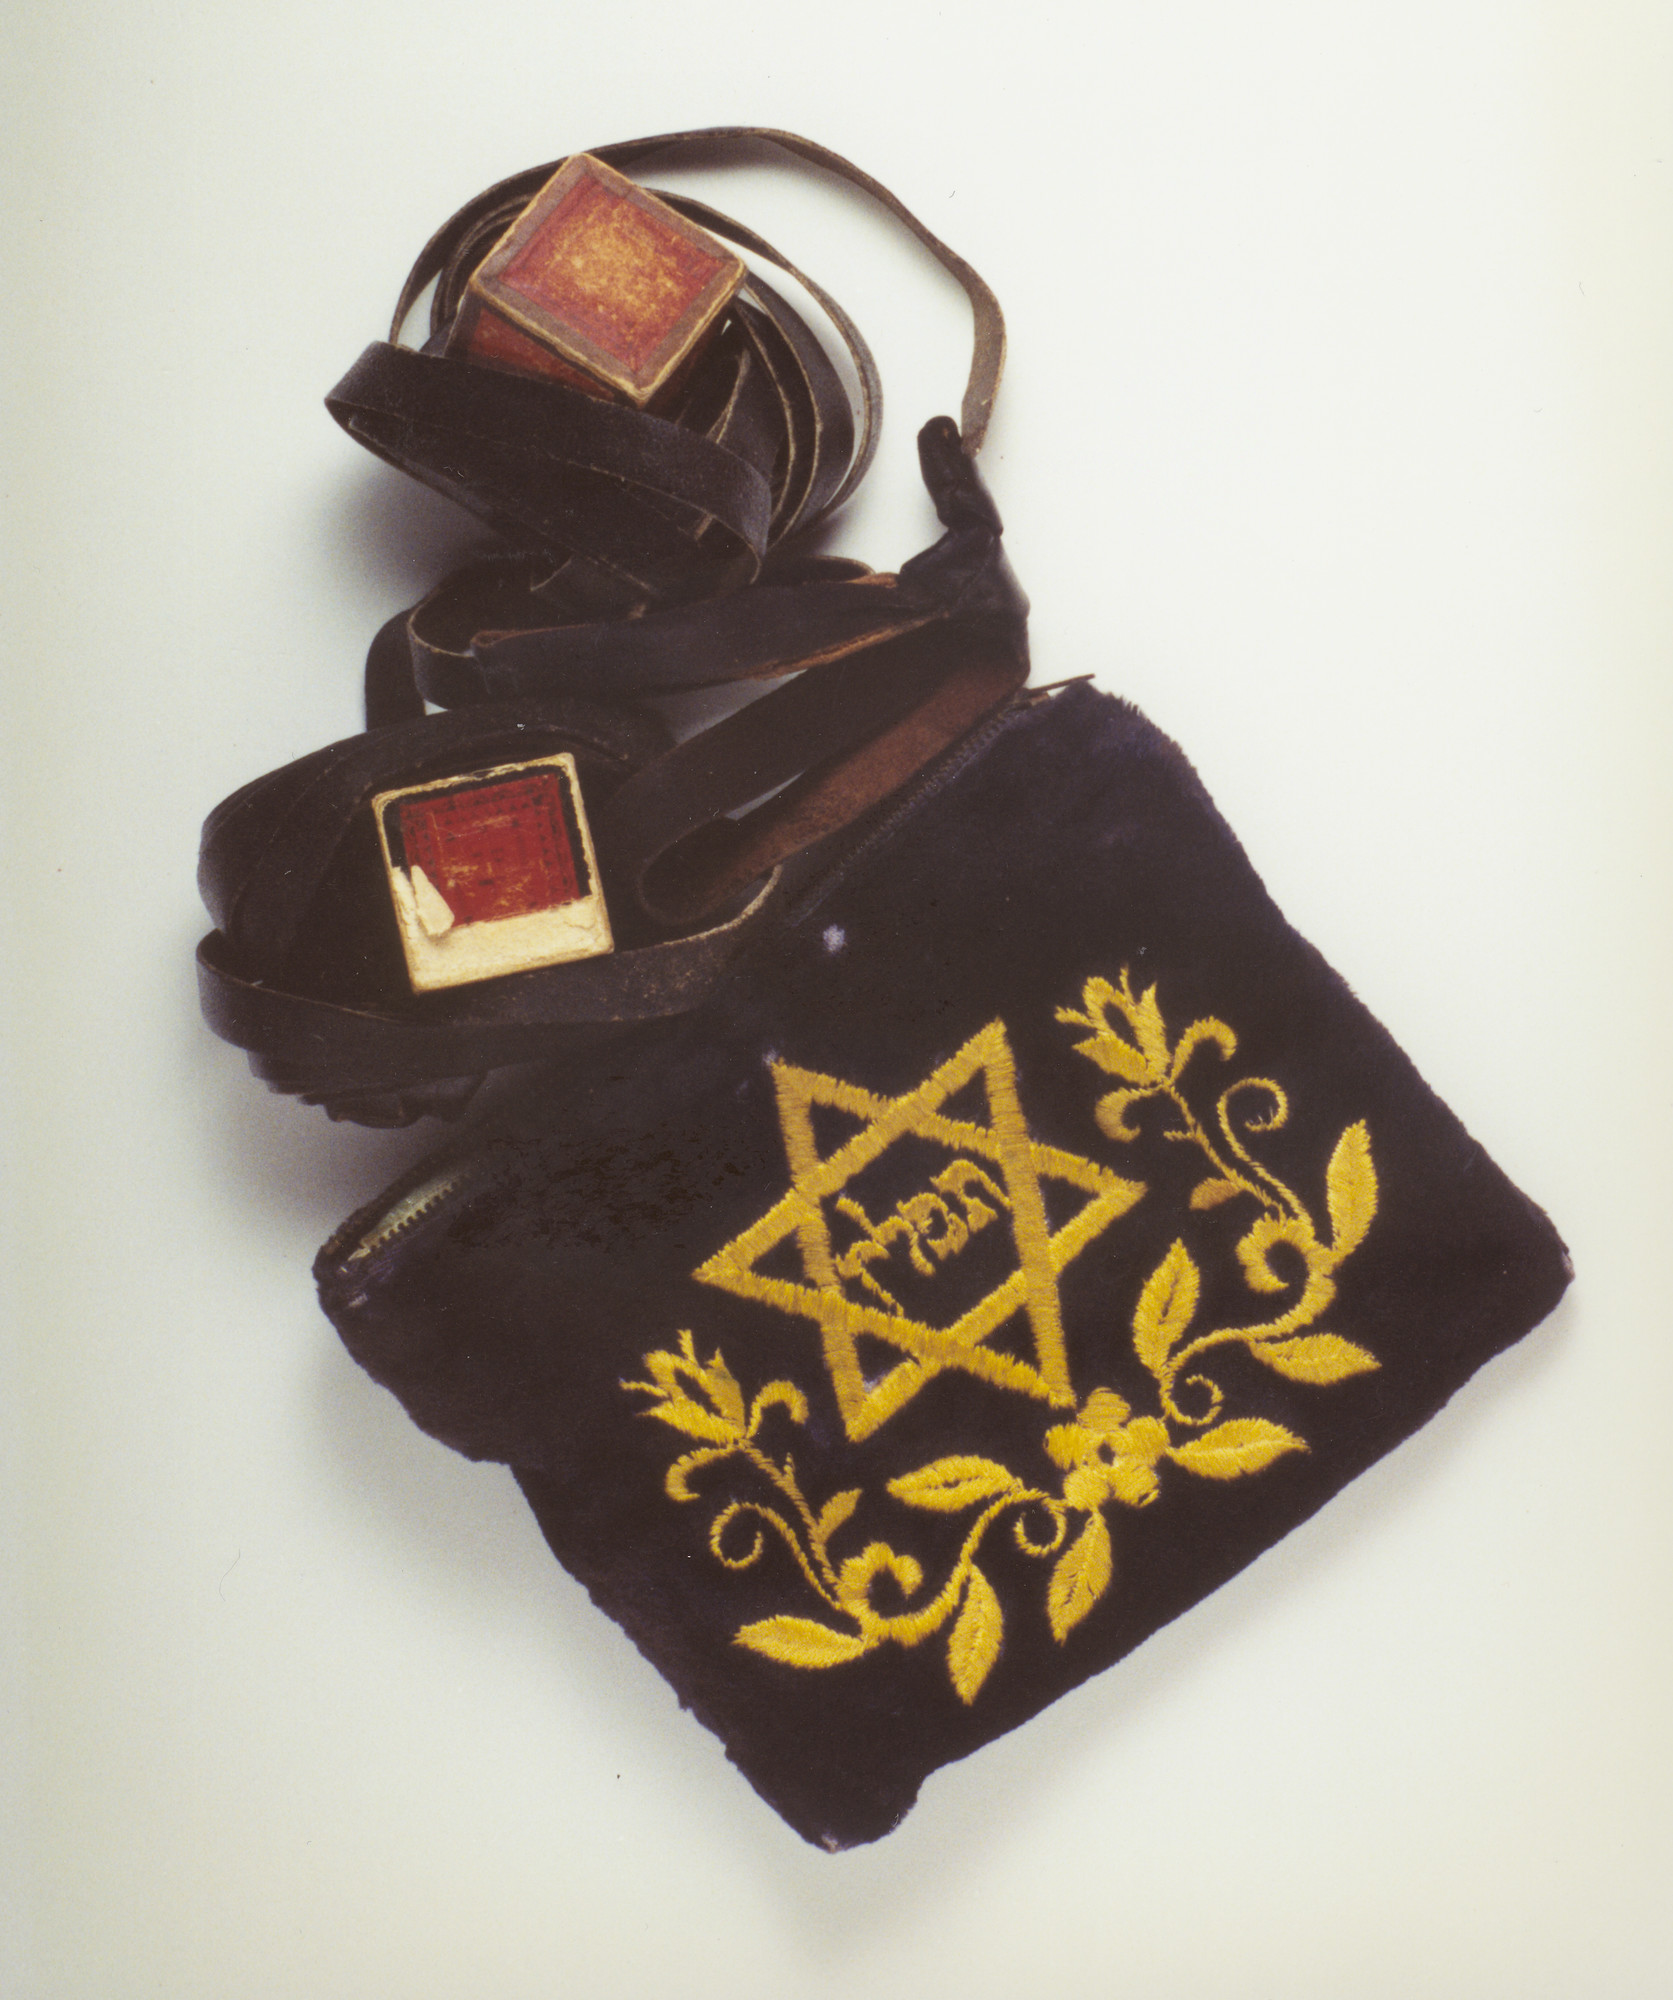 A set of Jewish ritual phylacteries (tefillin) and a gold velour tefillin bag.  The donor, Walter Fried, found this artifact on the body of a concentration camp prisoner buried in a grave near Regensburg.  The prisoner had died during a death march.